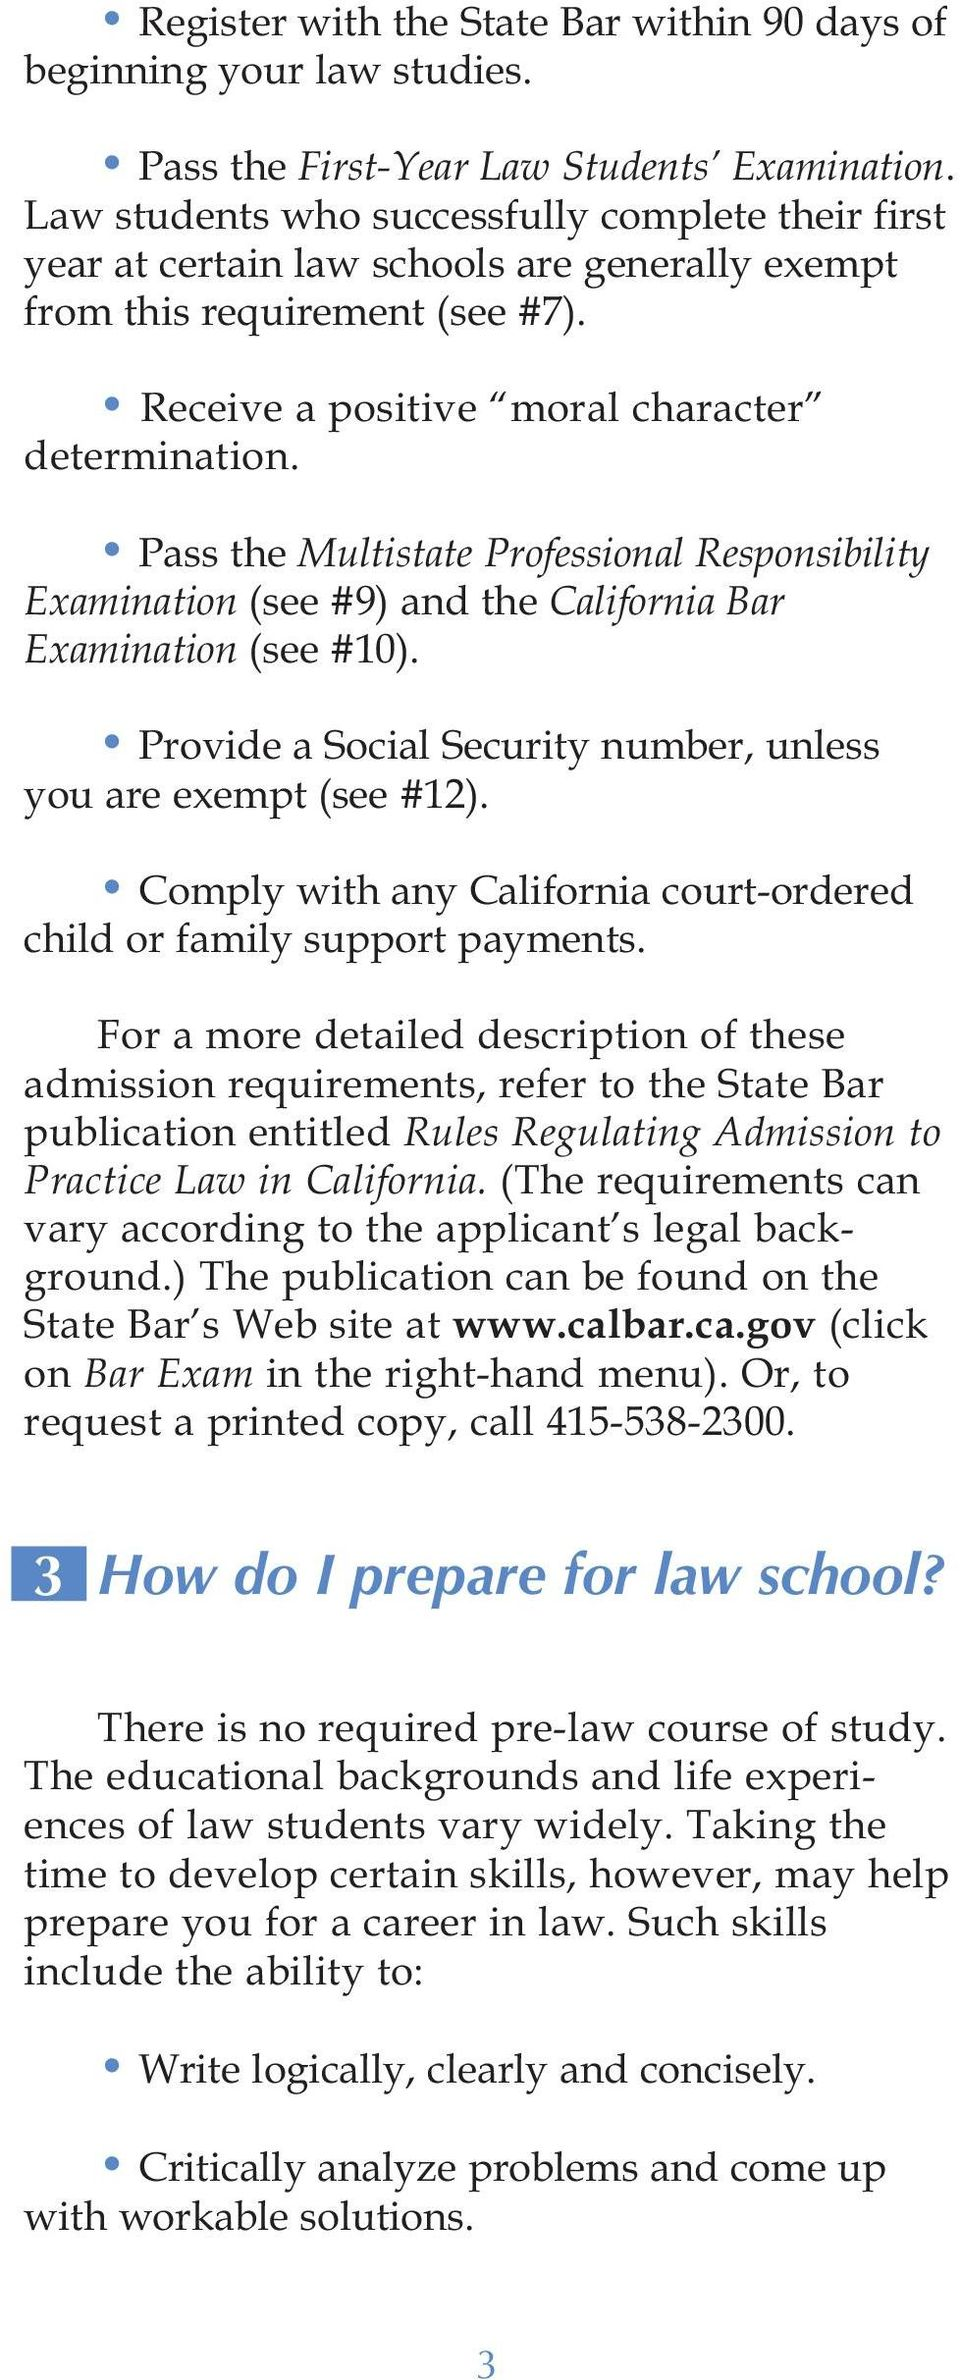 Pass the Multistate Professional Responsibility Examination (see #9) and the California Bar Examination (see #10). Provide a Social Security number, unless you are exempt (see #12).